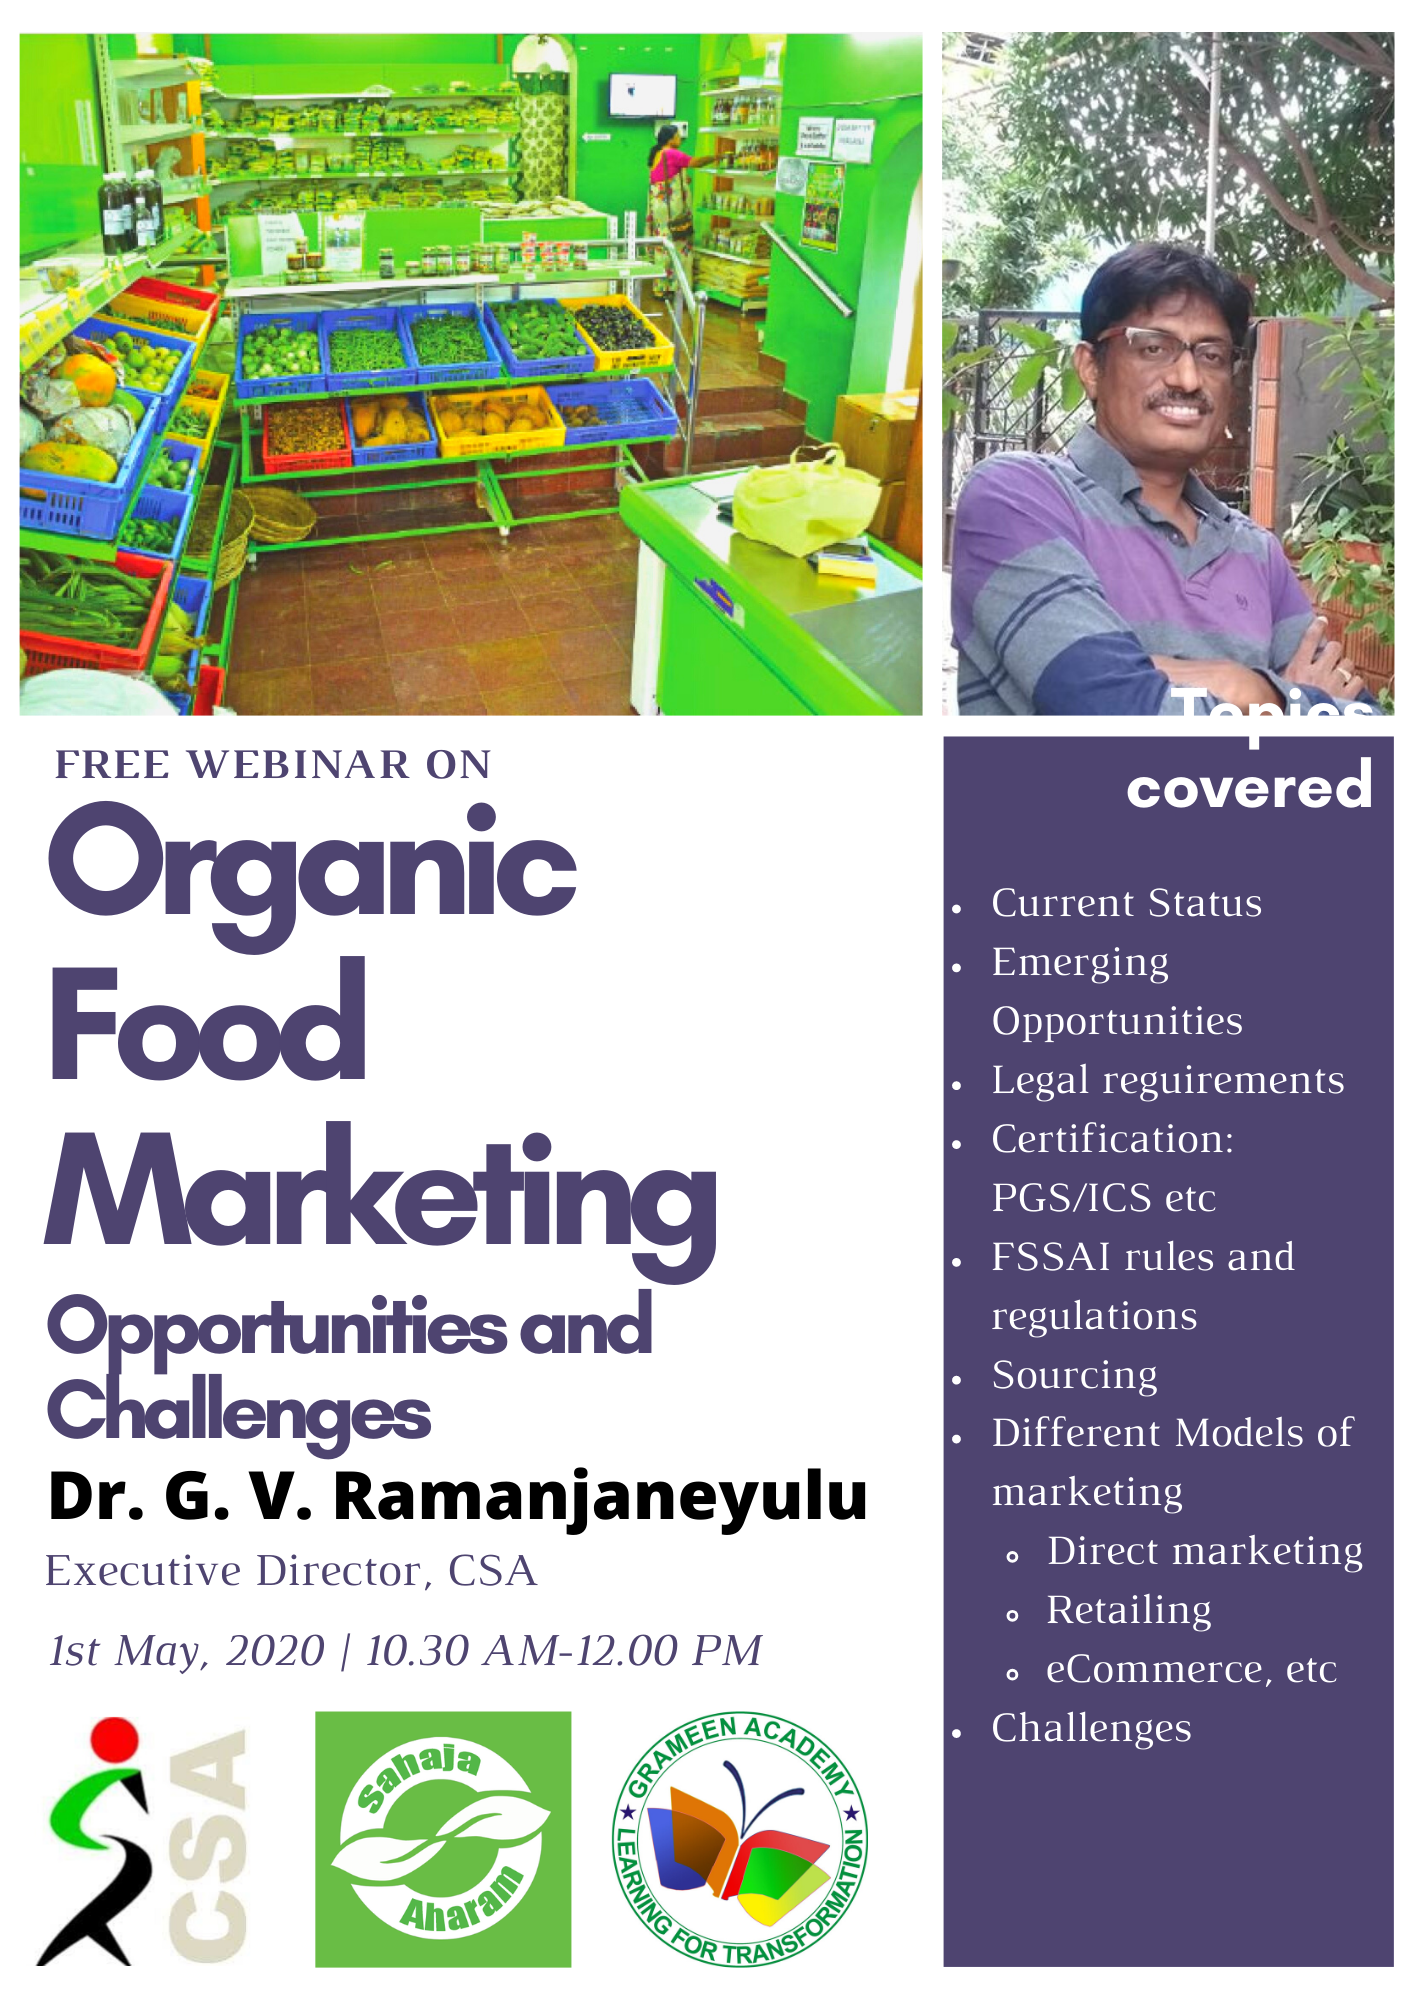 200501 Organic Food Marketing Opportunities and Challenges